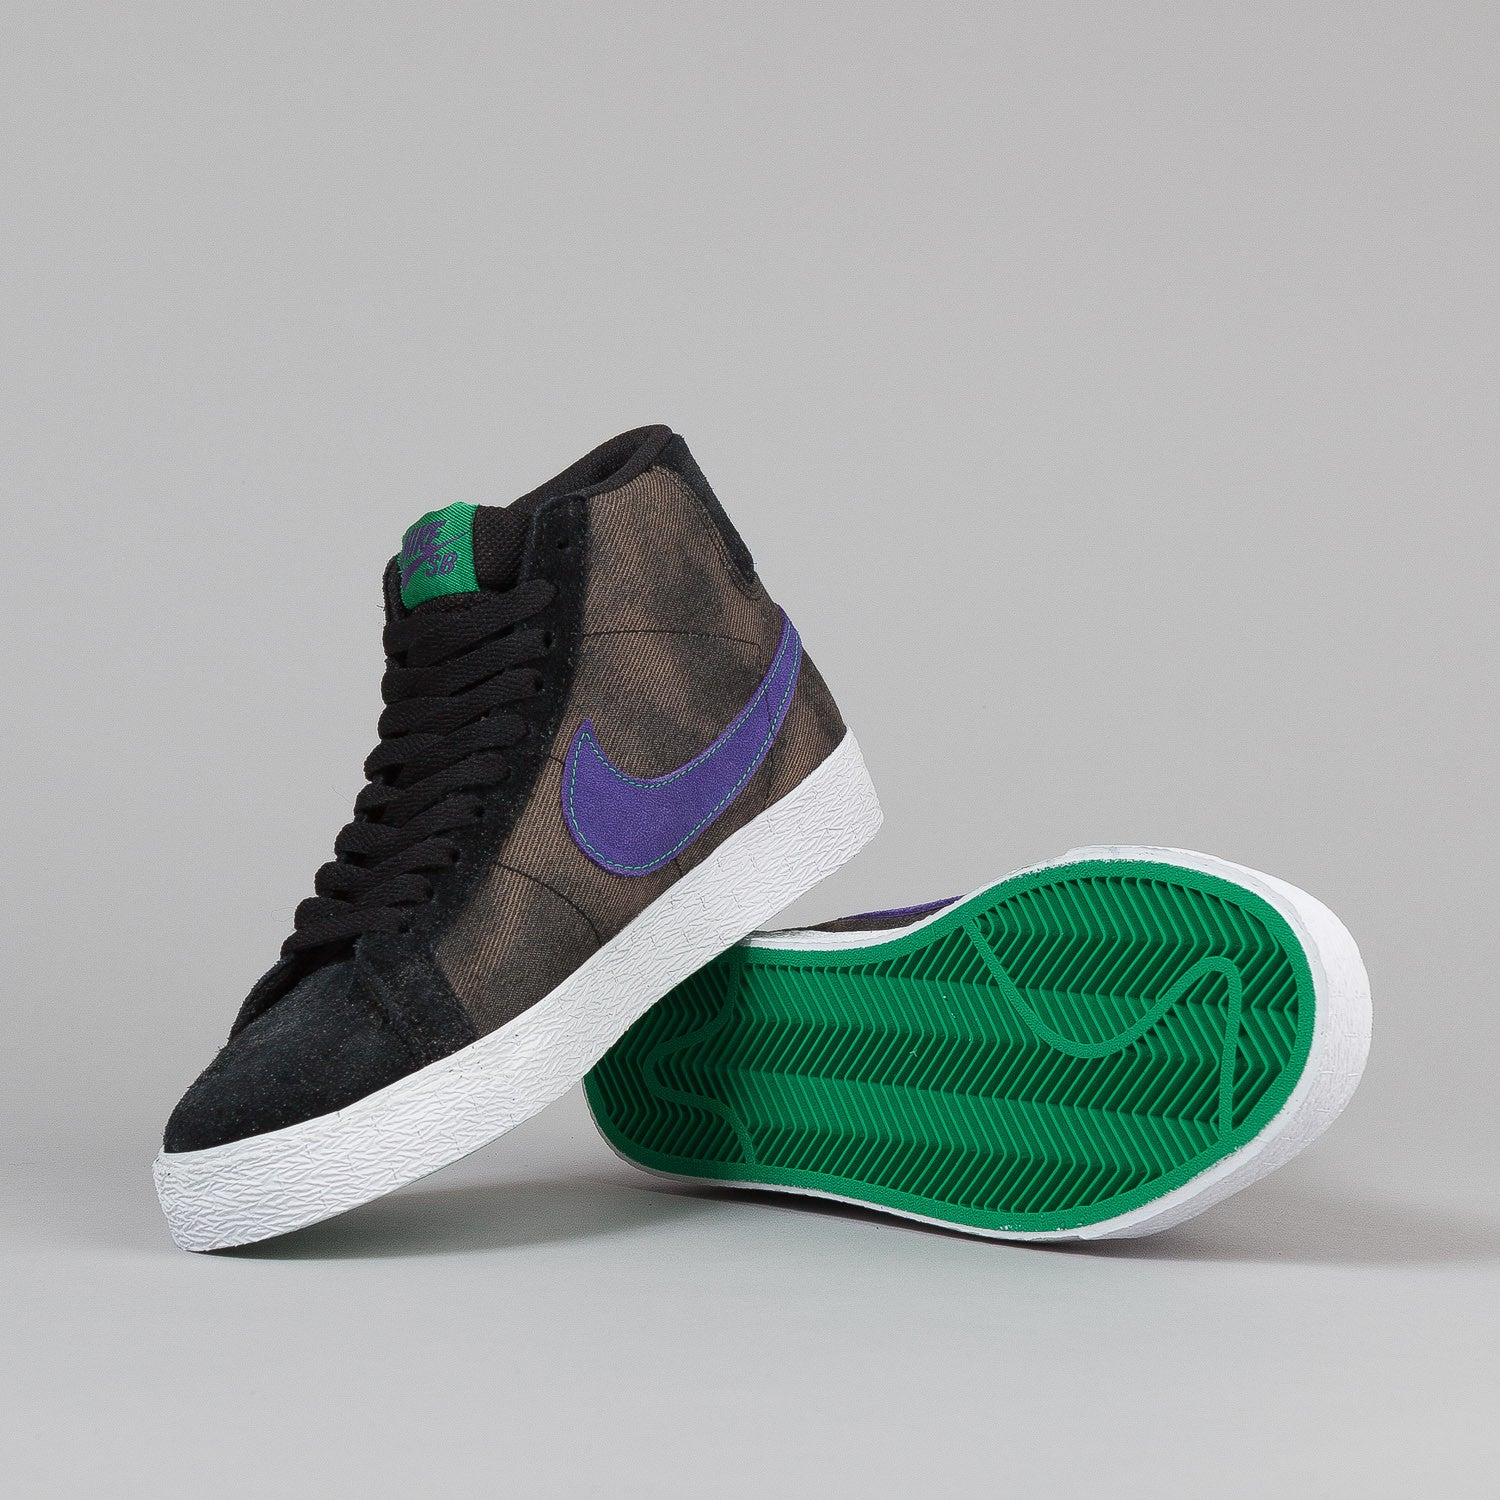 Nike SB Blazer Shoes - Black / Varsity Purple / Volt